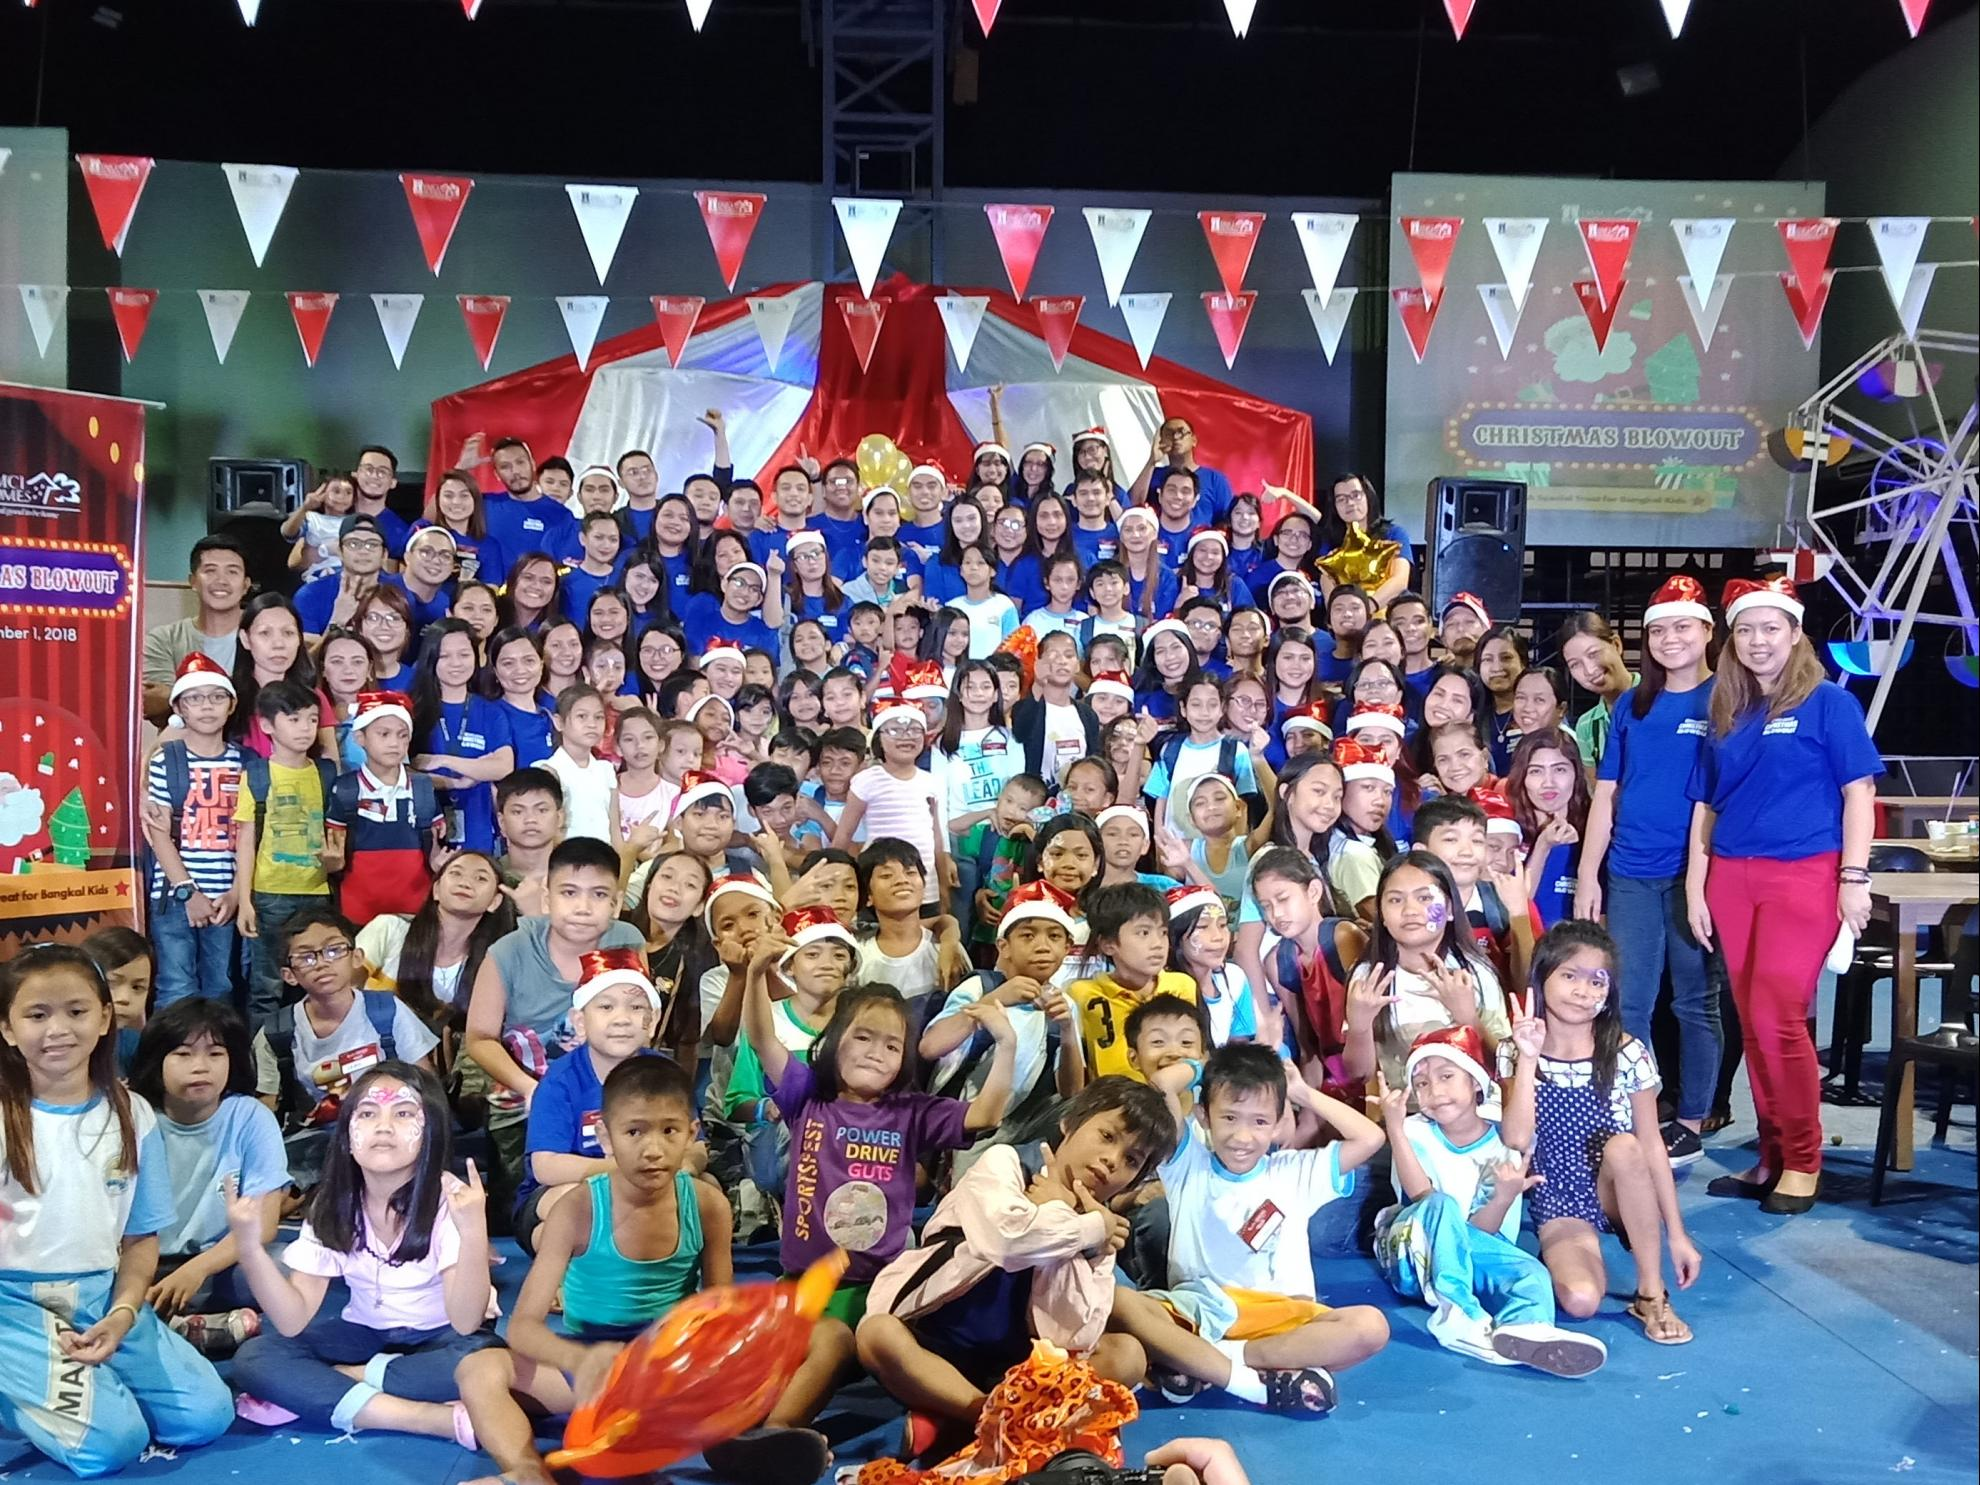 Barangay Bangkal, Makati lauds DMCI Homes yearly 'Christmas Blowout' for underprivileged kids